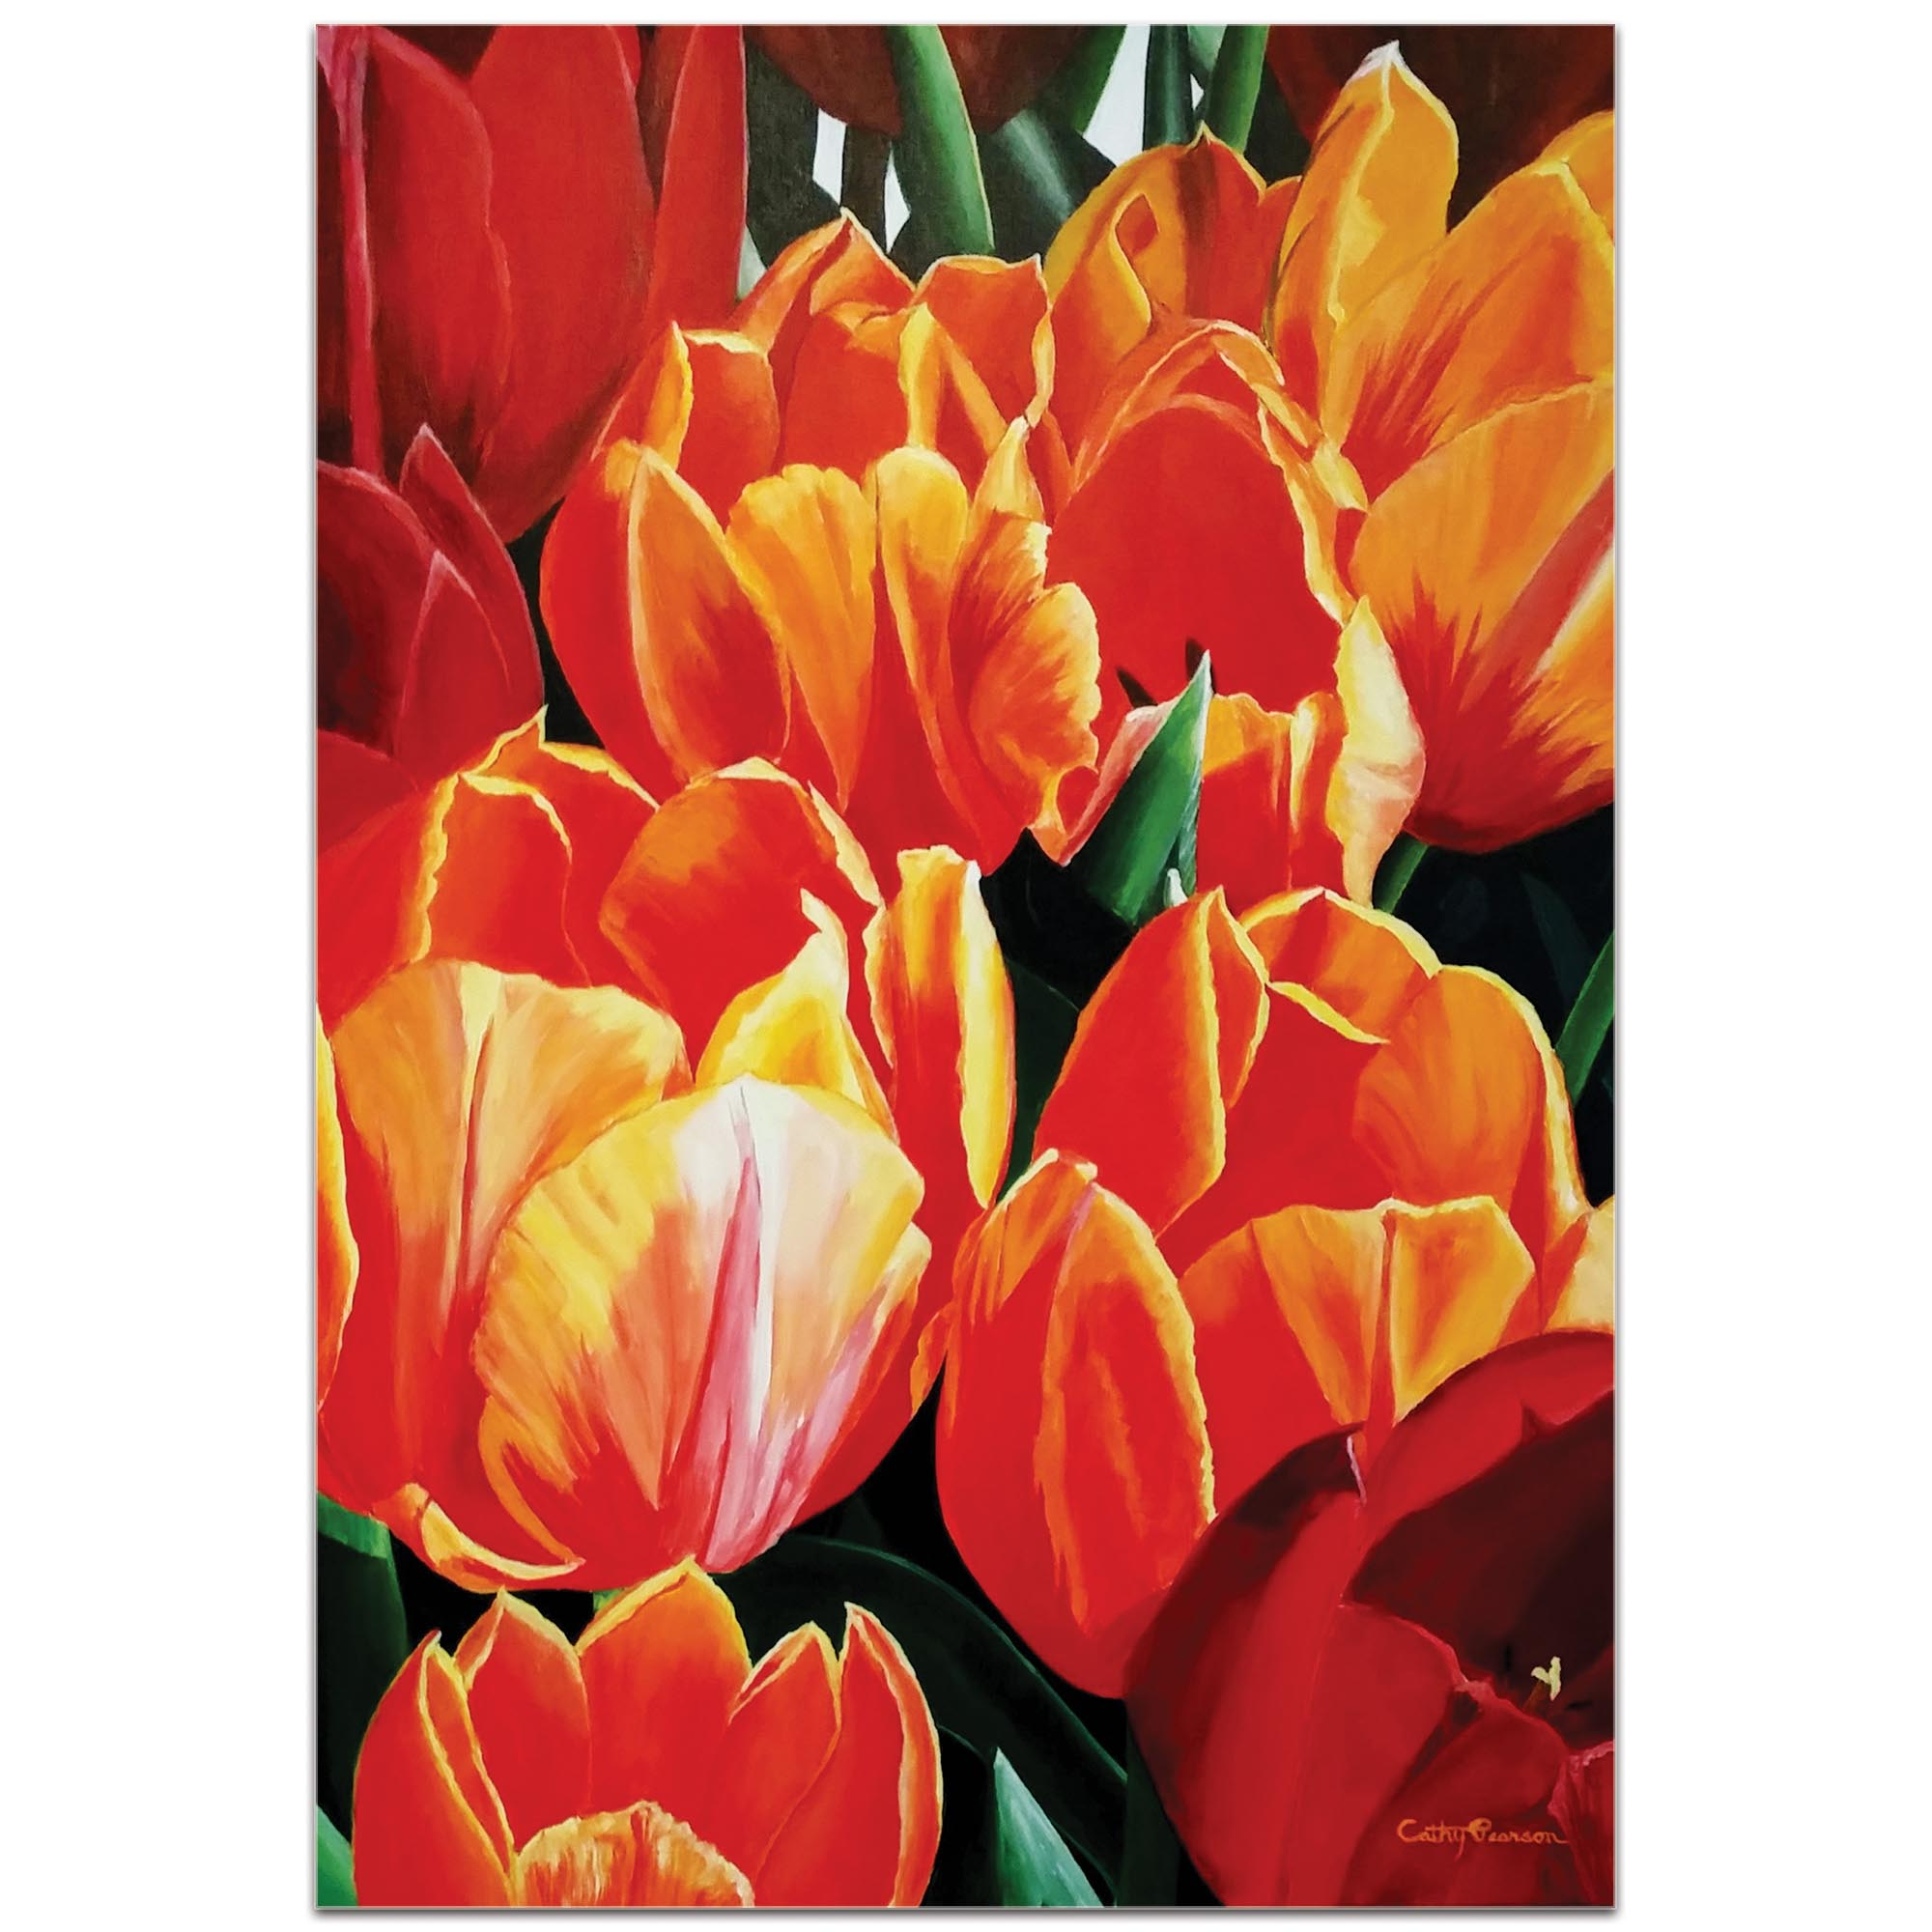 Traditional Wall Art 'Tulip Bonanza' - Floral Decor on Metal or Plexiglass - Image 2